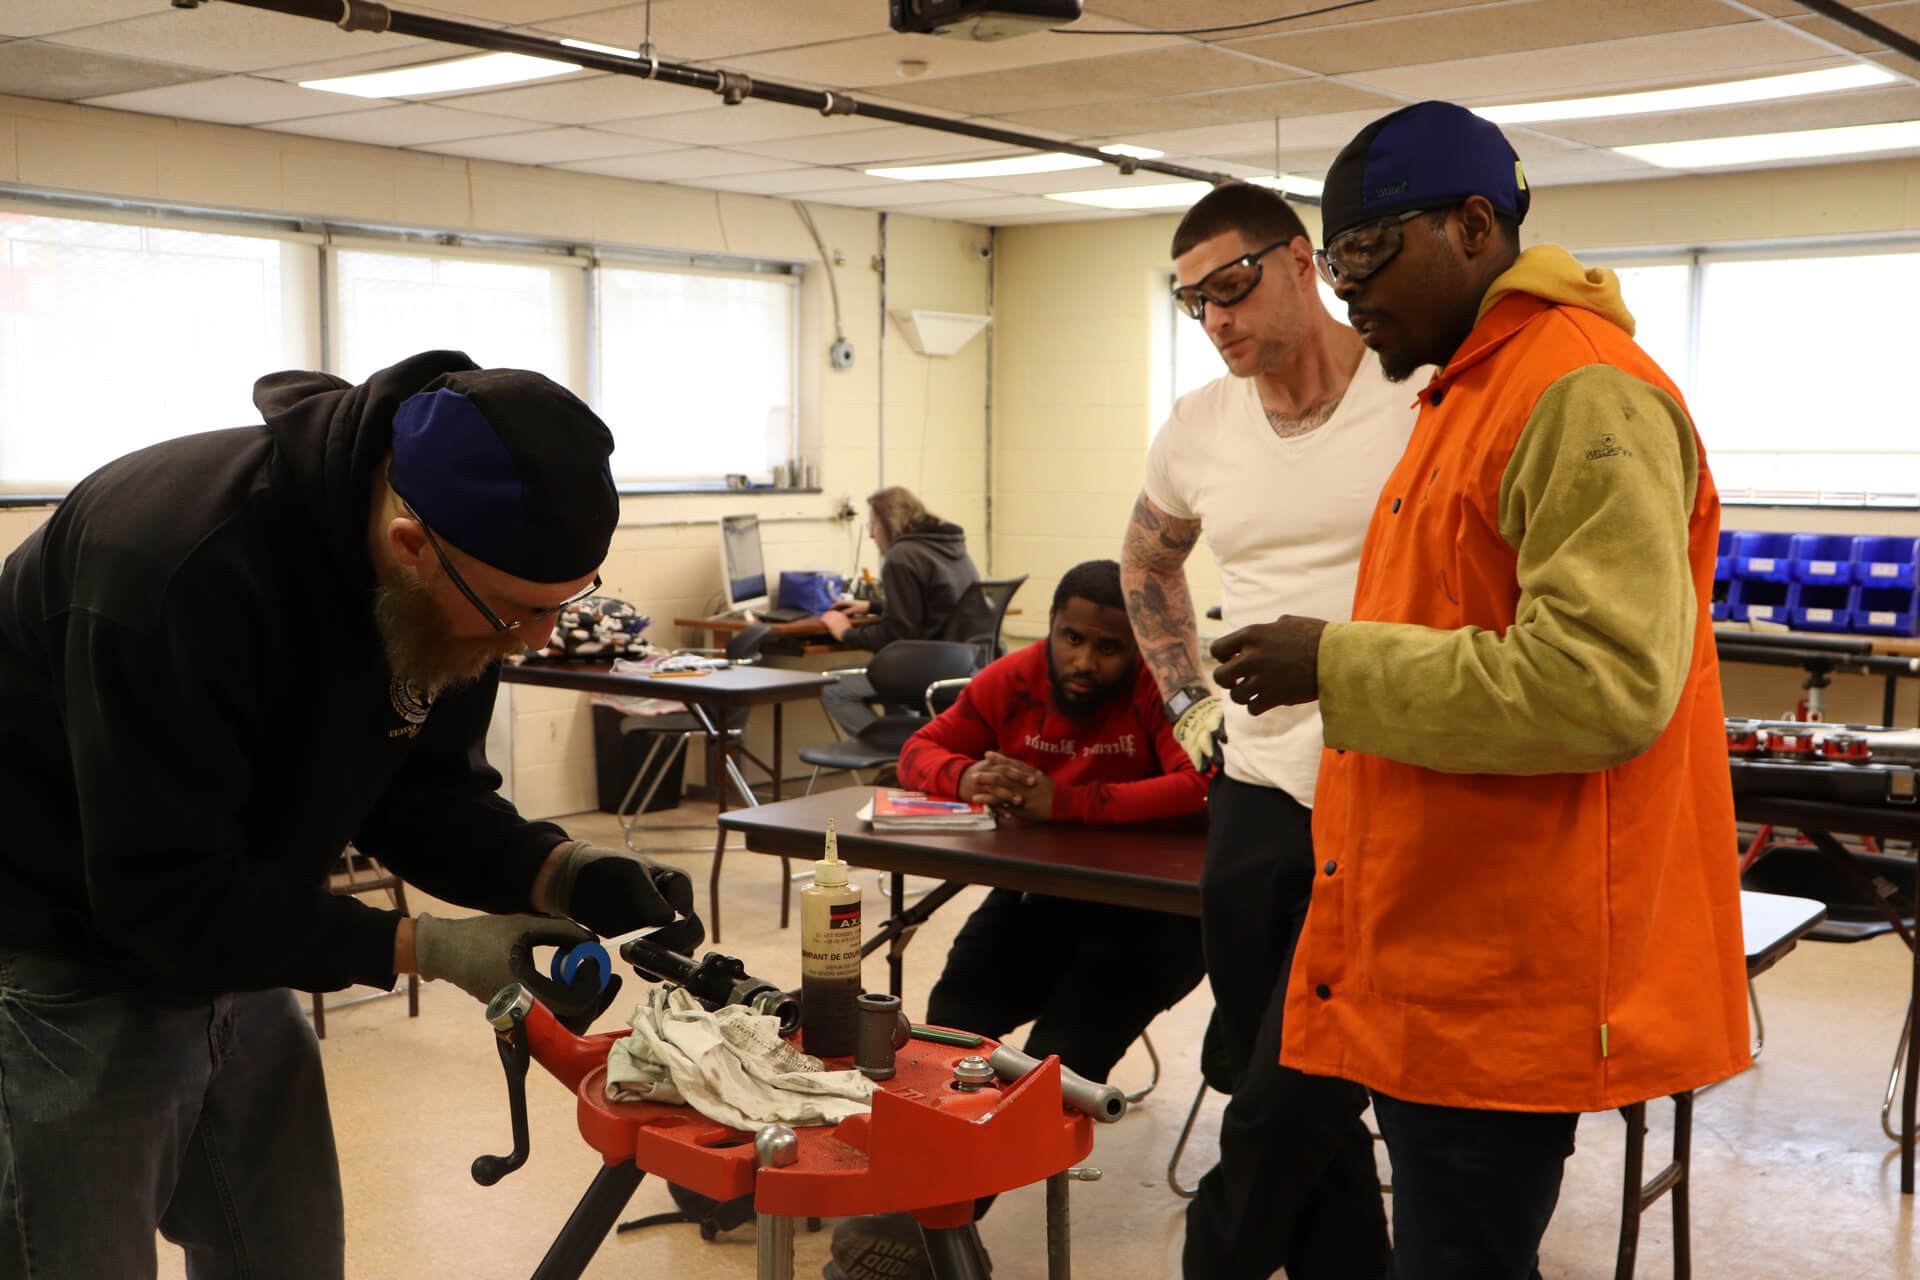 Plumbing and PipeFitter Faculty at Trade School in Philadelphia